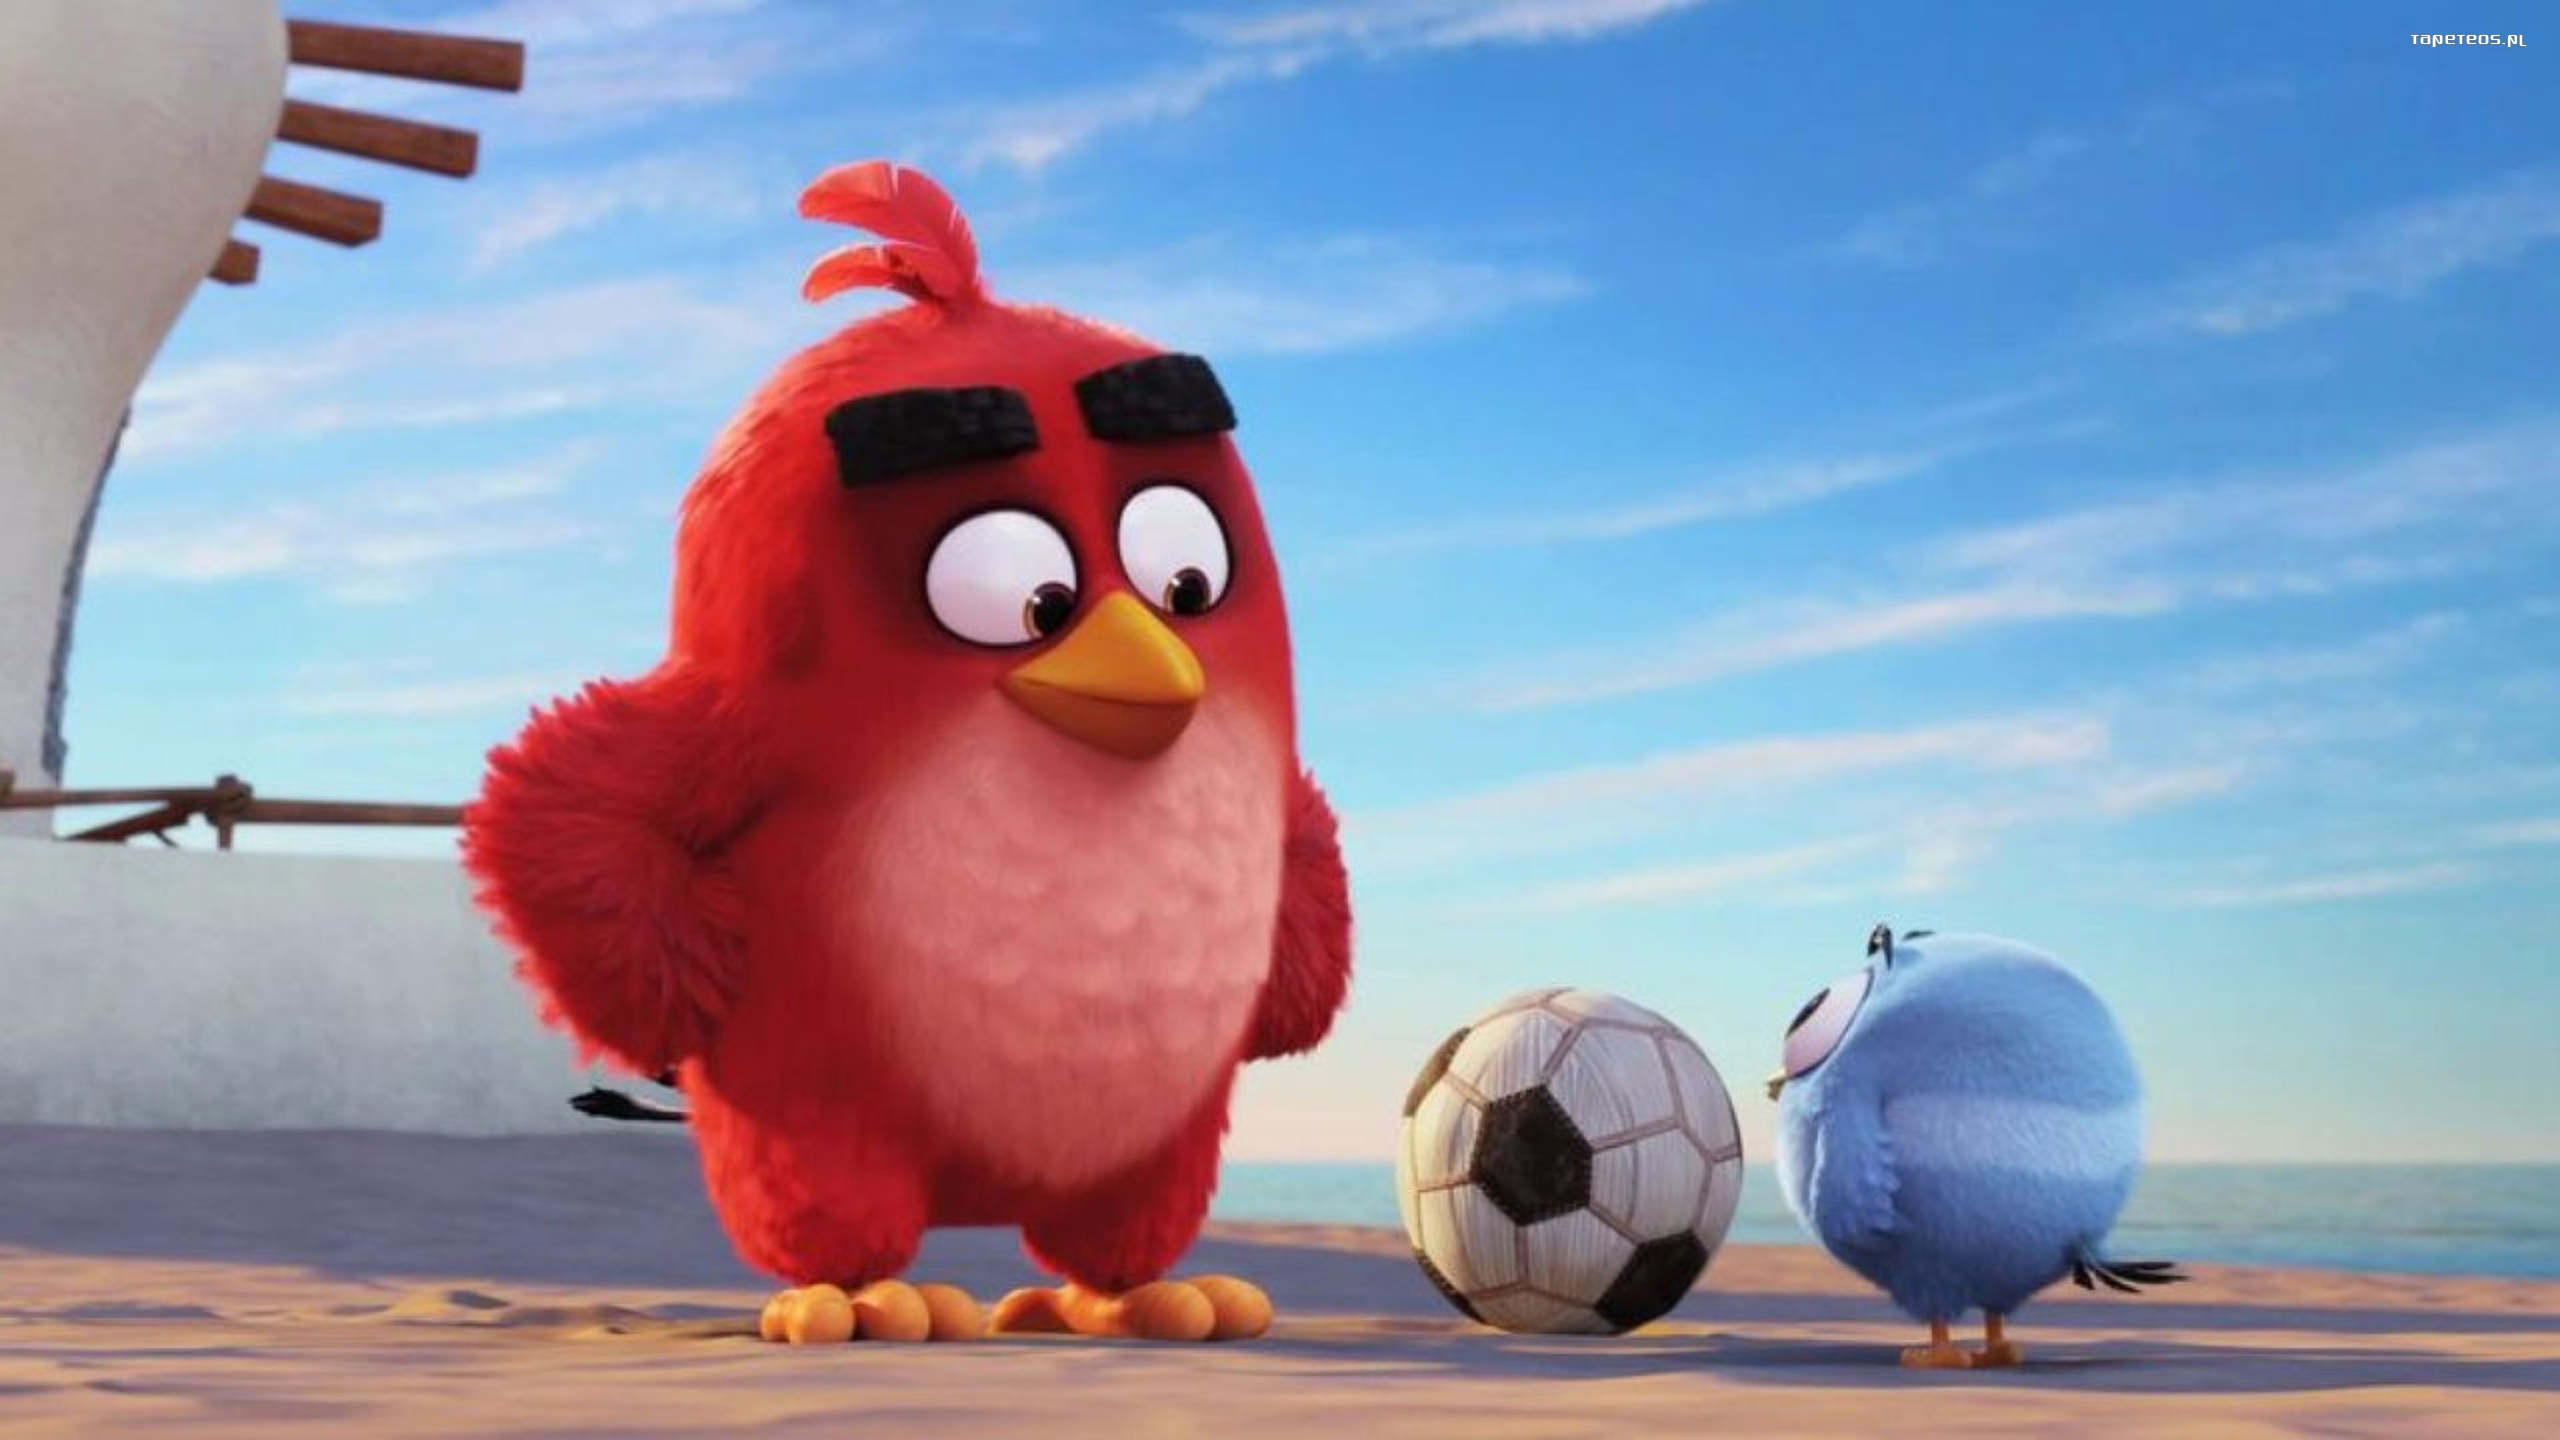 Angry Birds Film (2016) 014 Red